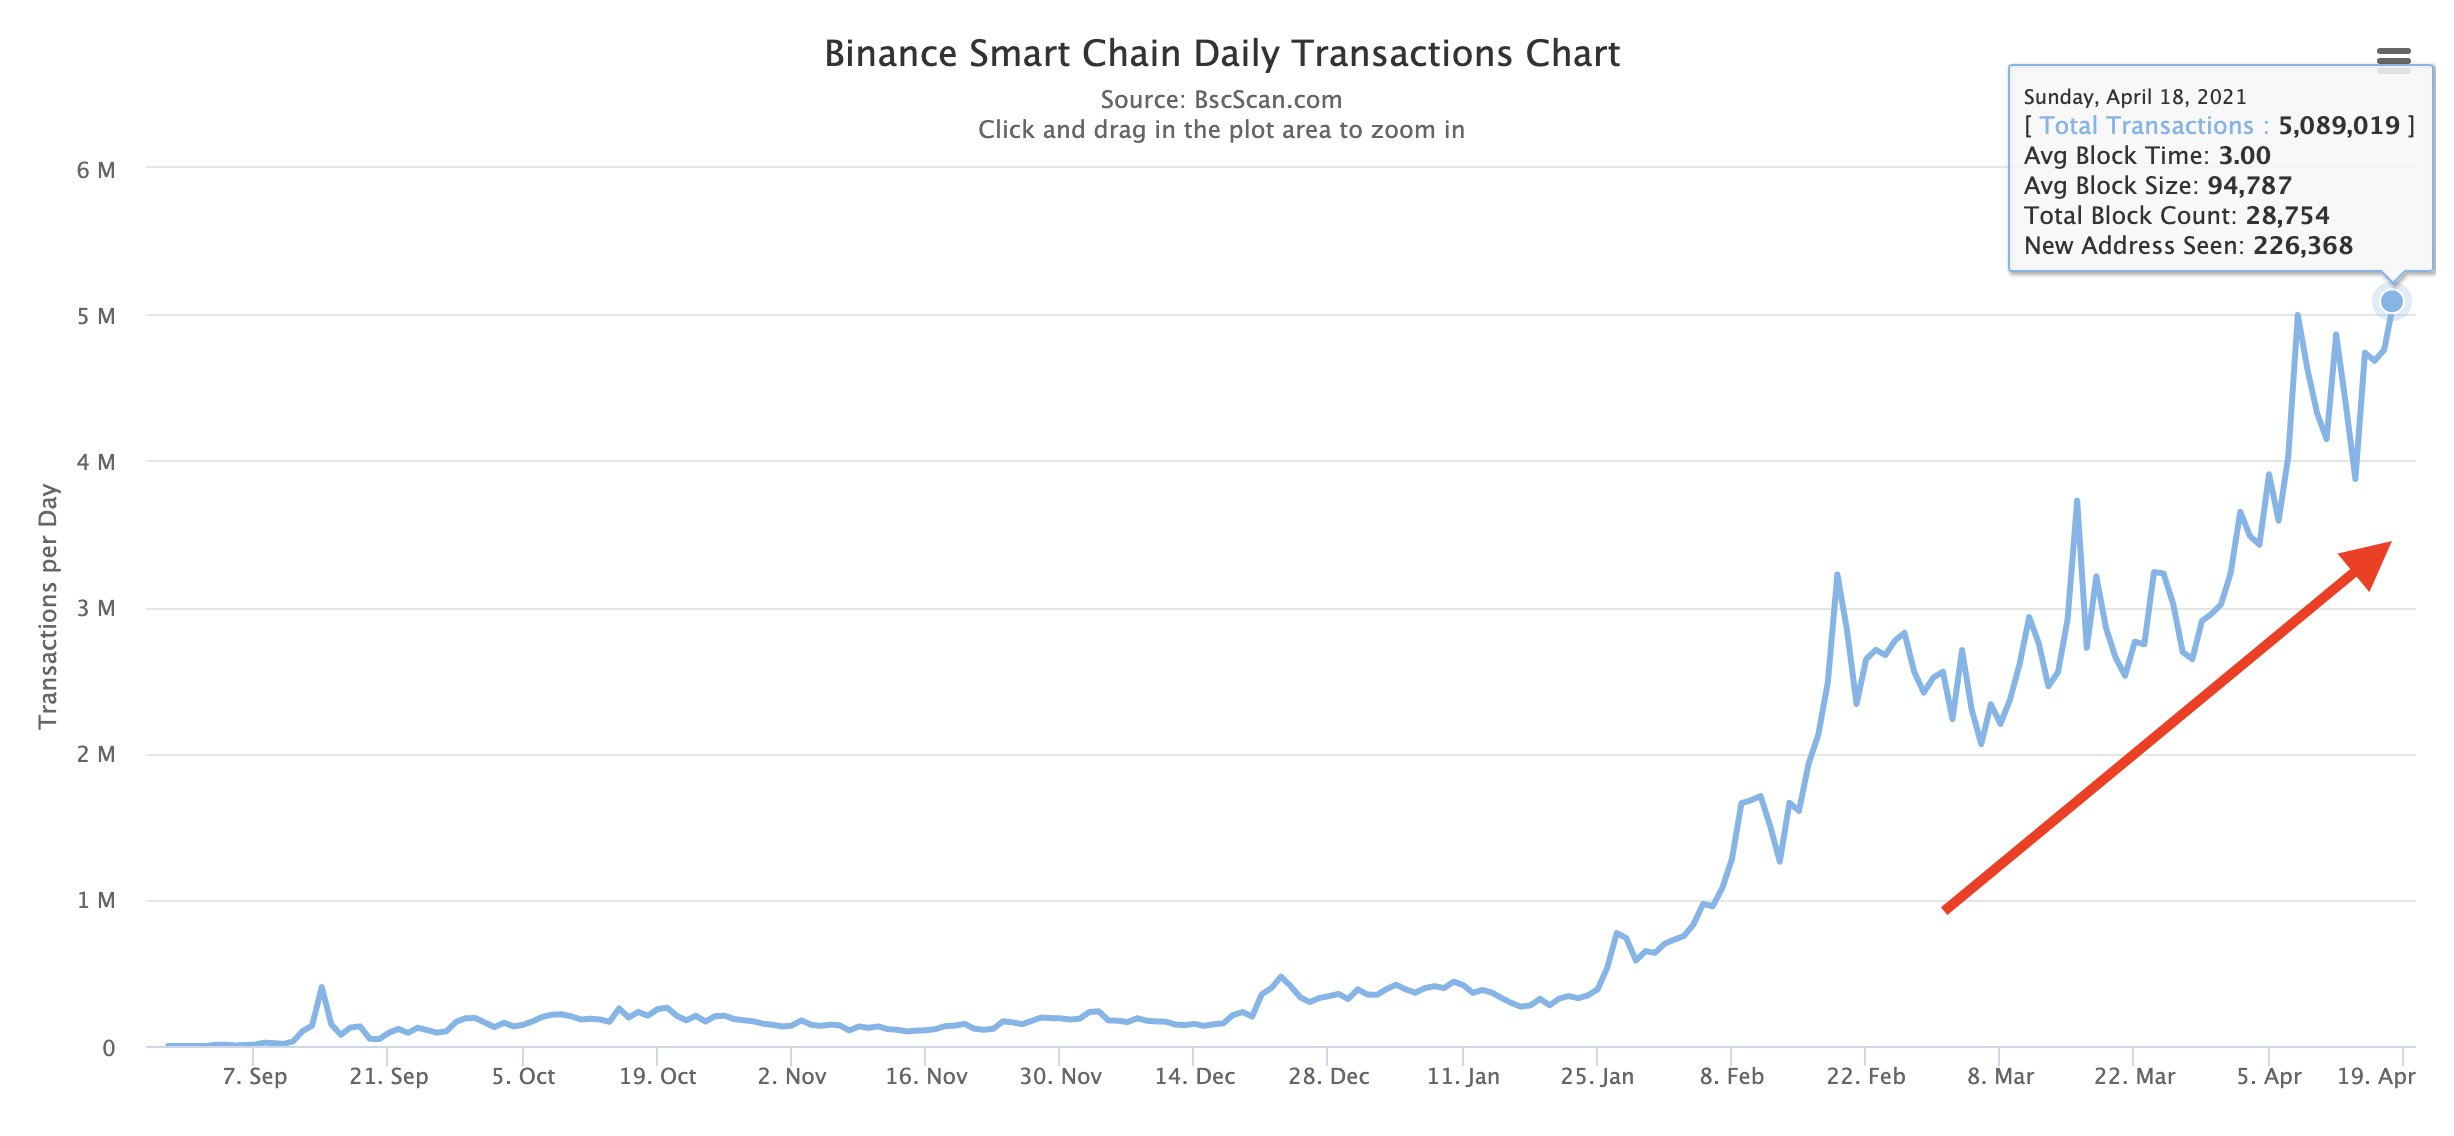 Binance Coin restores 20% in a day: Why is BNB seeing such a strong recovery?